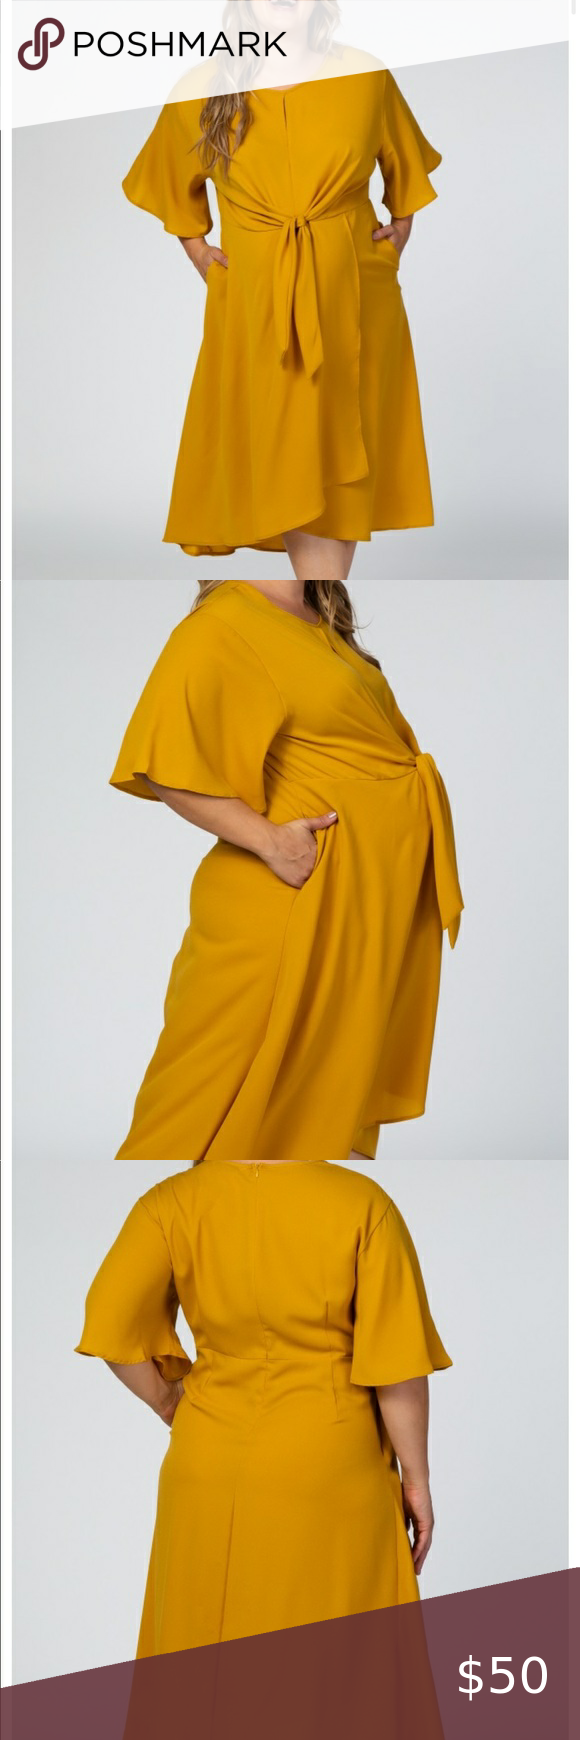 Gorgeous Mustard Maternity Dress I wish this fit me! It's too tight around my …  – My Posh Picks